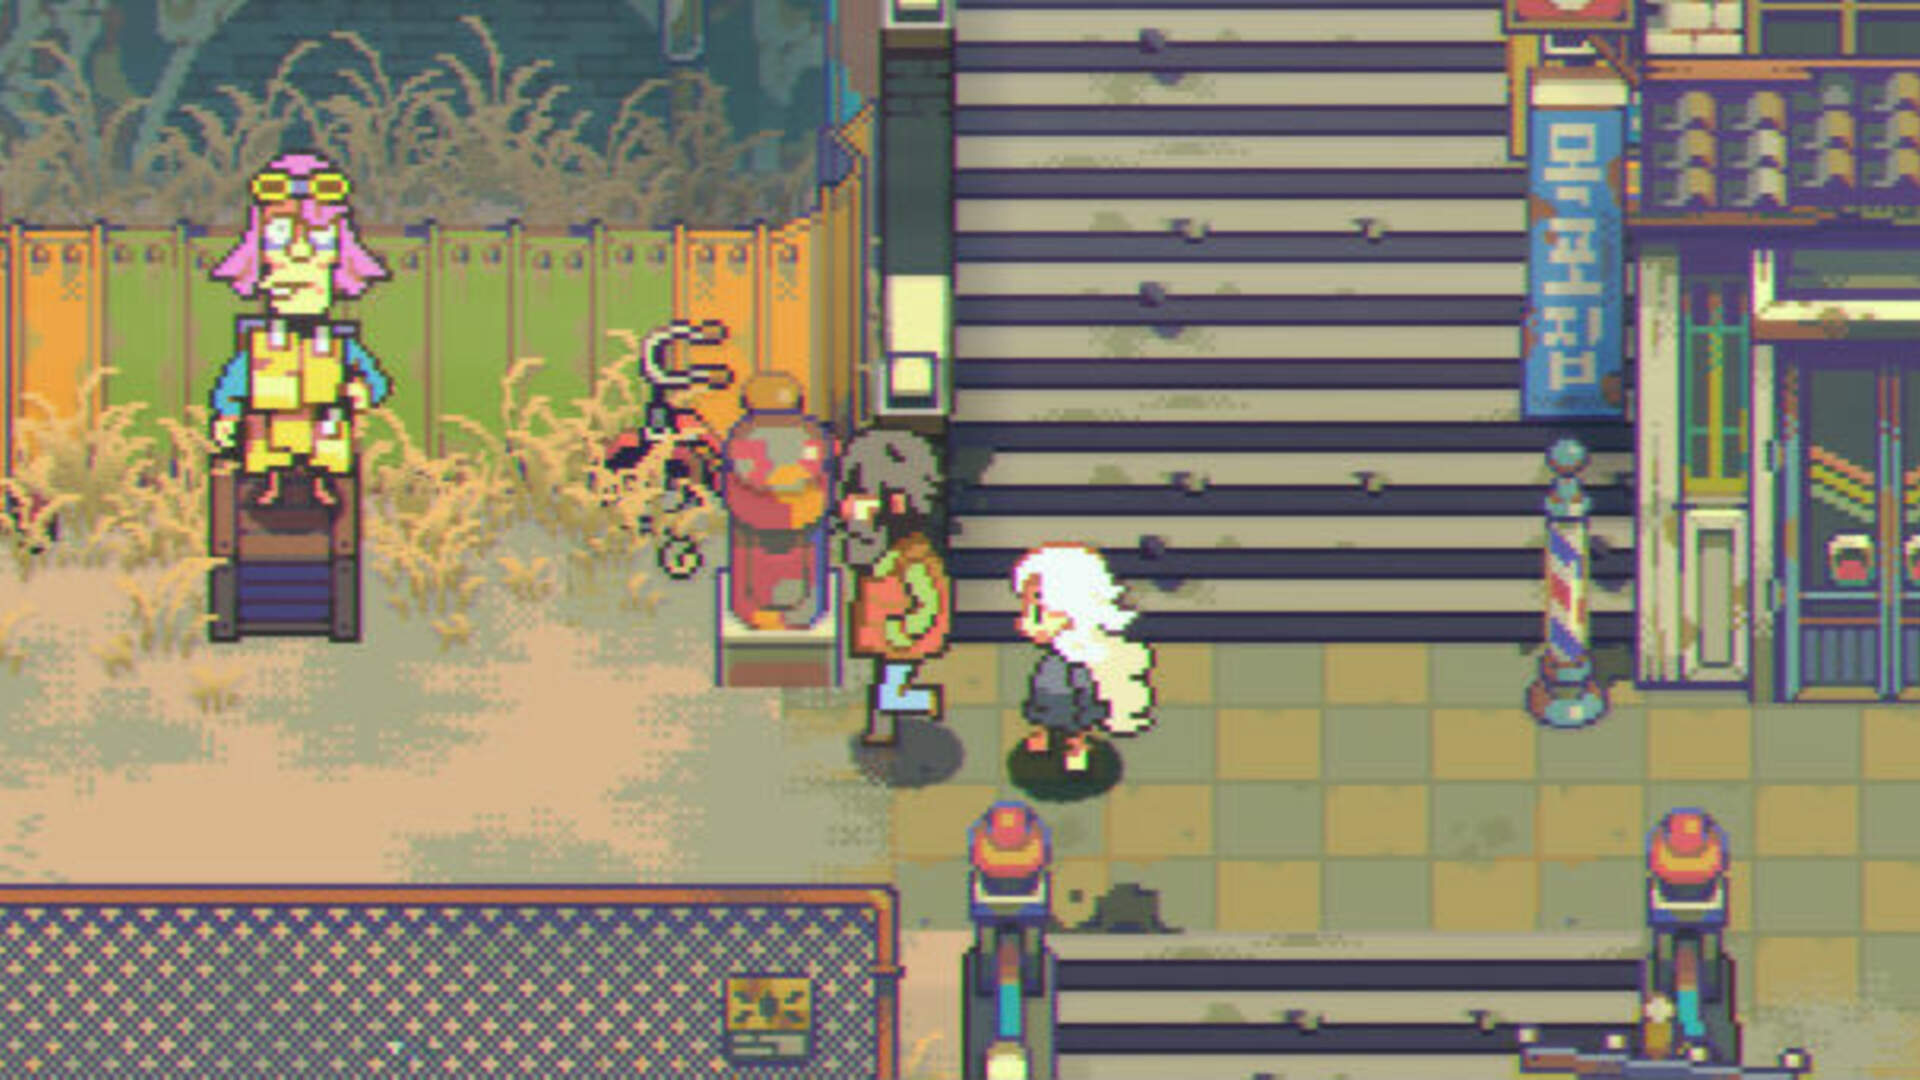 Stardew Valley Publisher Chucklefish Teaming With New Developer to Make a Charming RPG Called Eastward